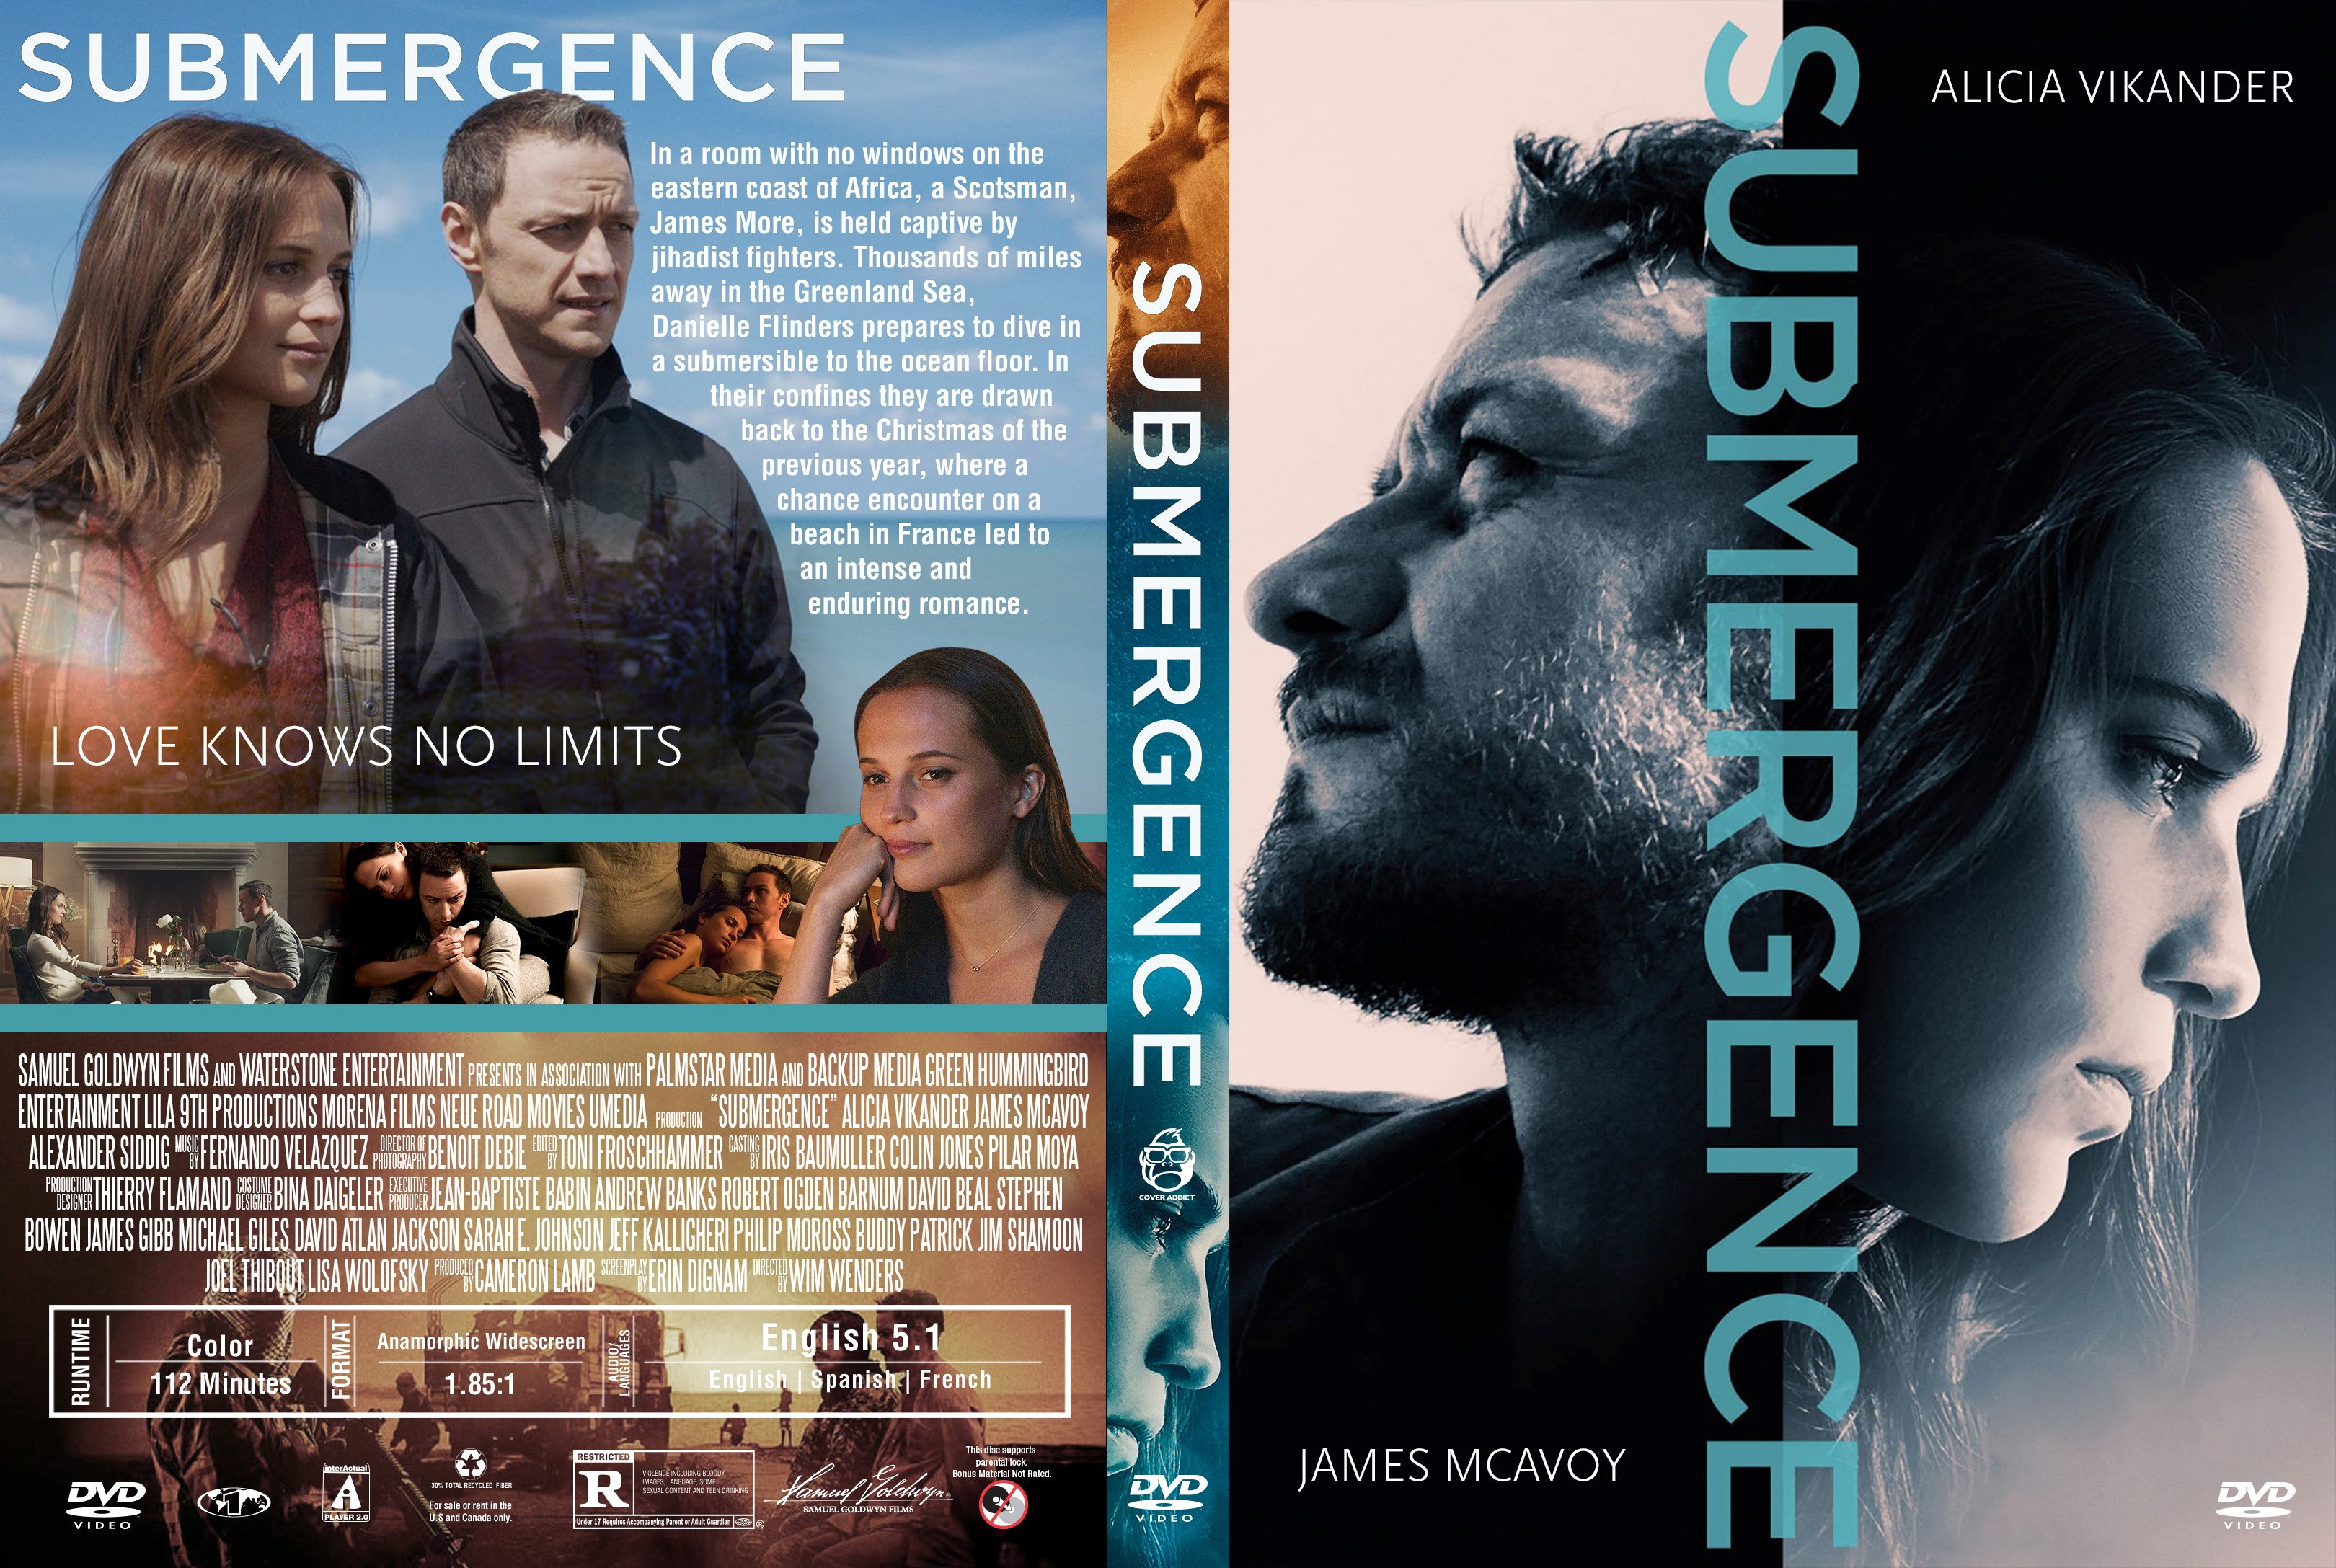 submergence dvd cover cover addict dvd bluray covers and movie